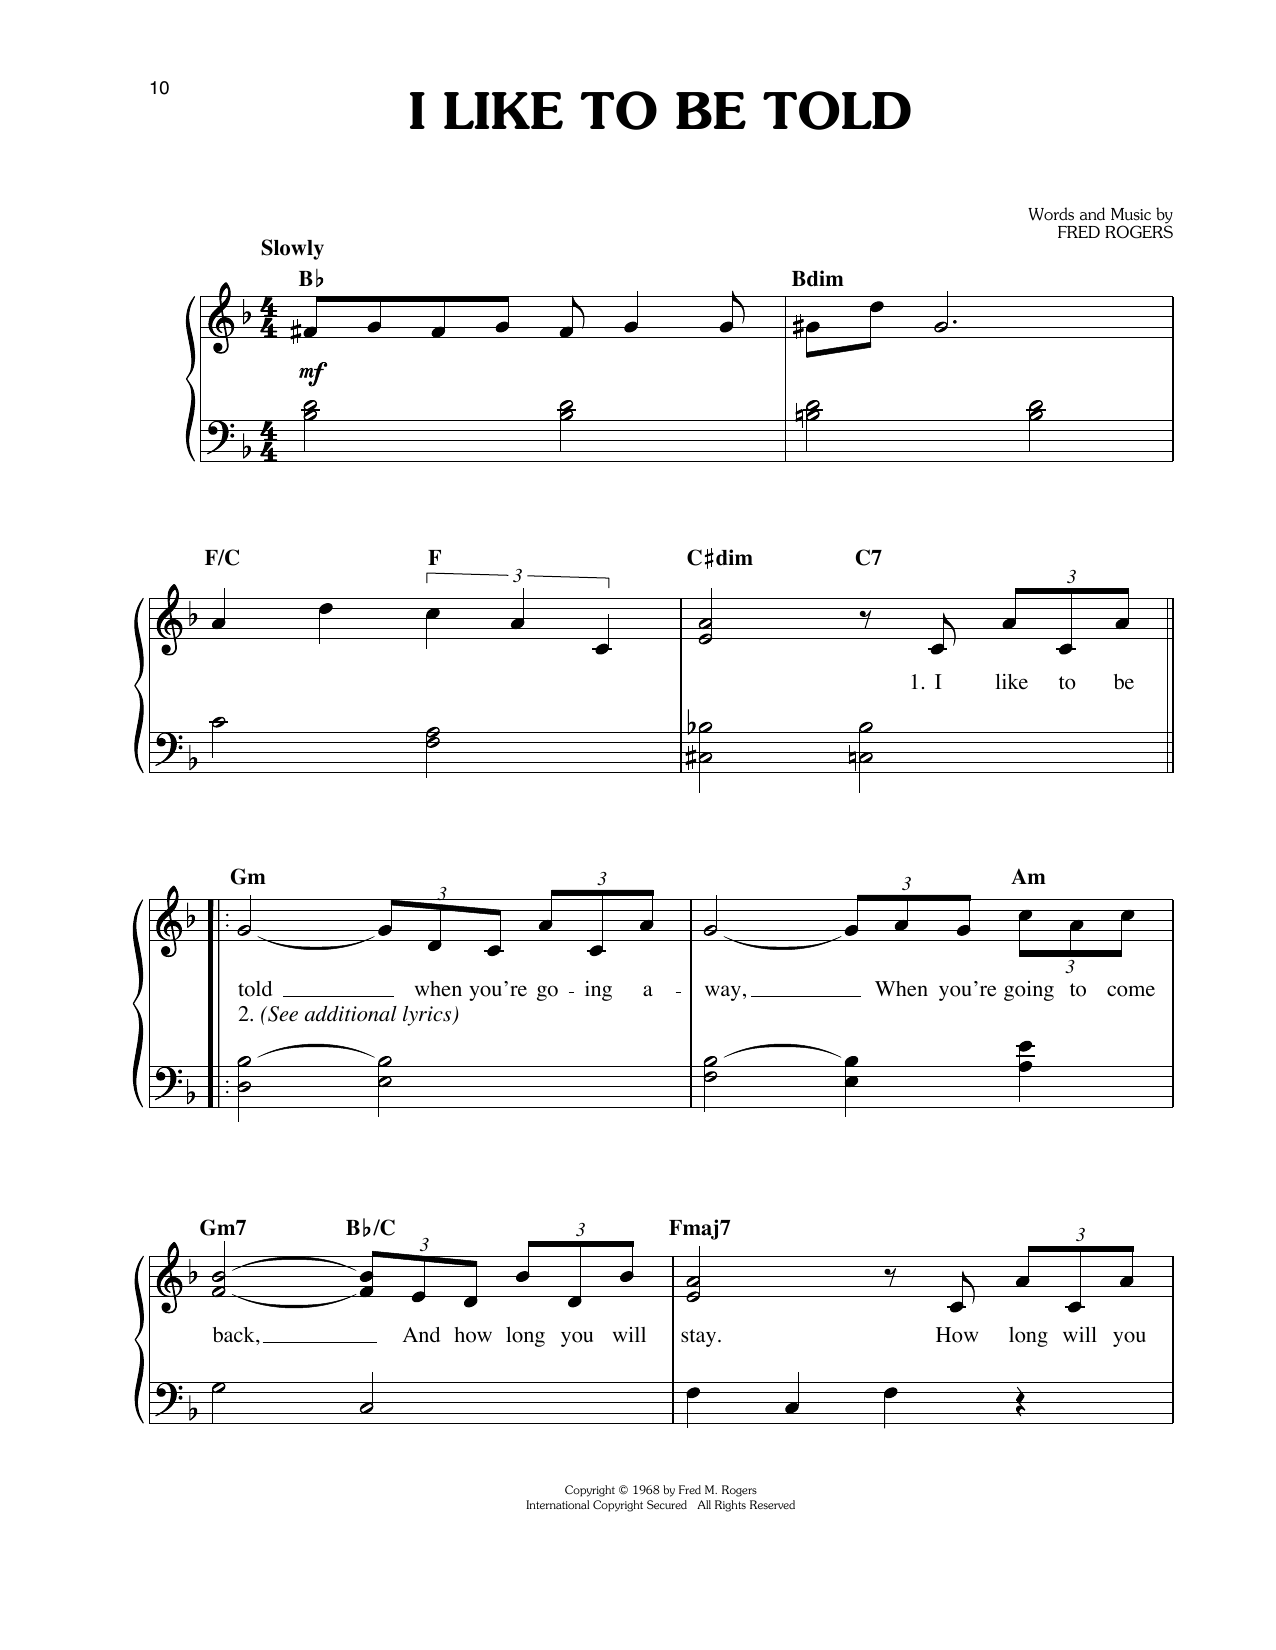 Fred Rogers I Like To Be Told sheet music notes and chords